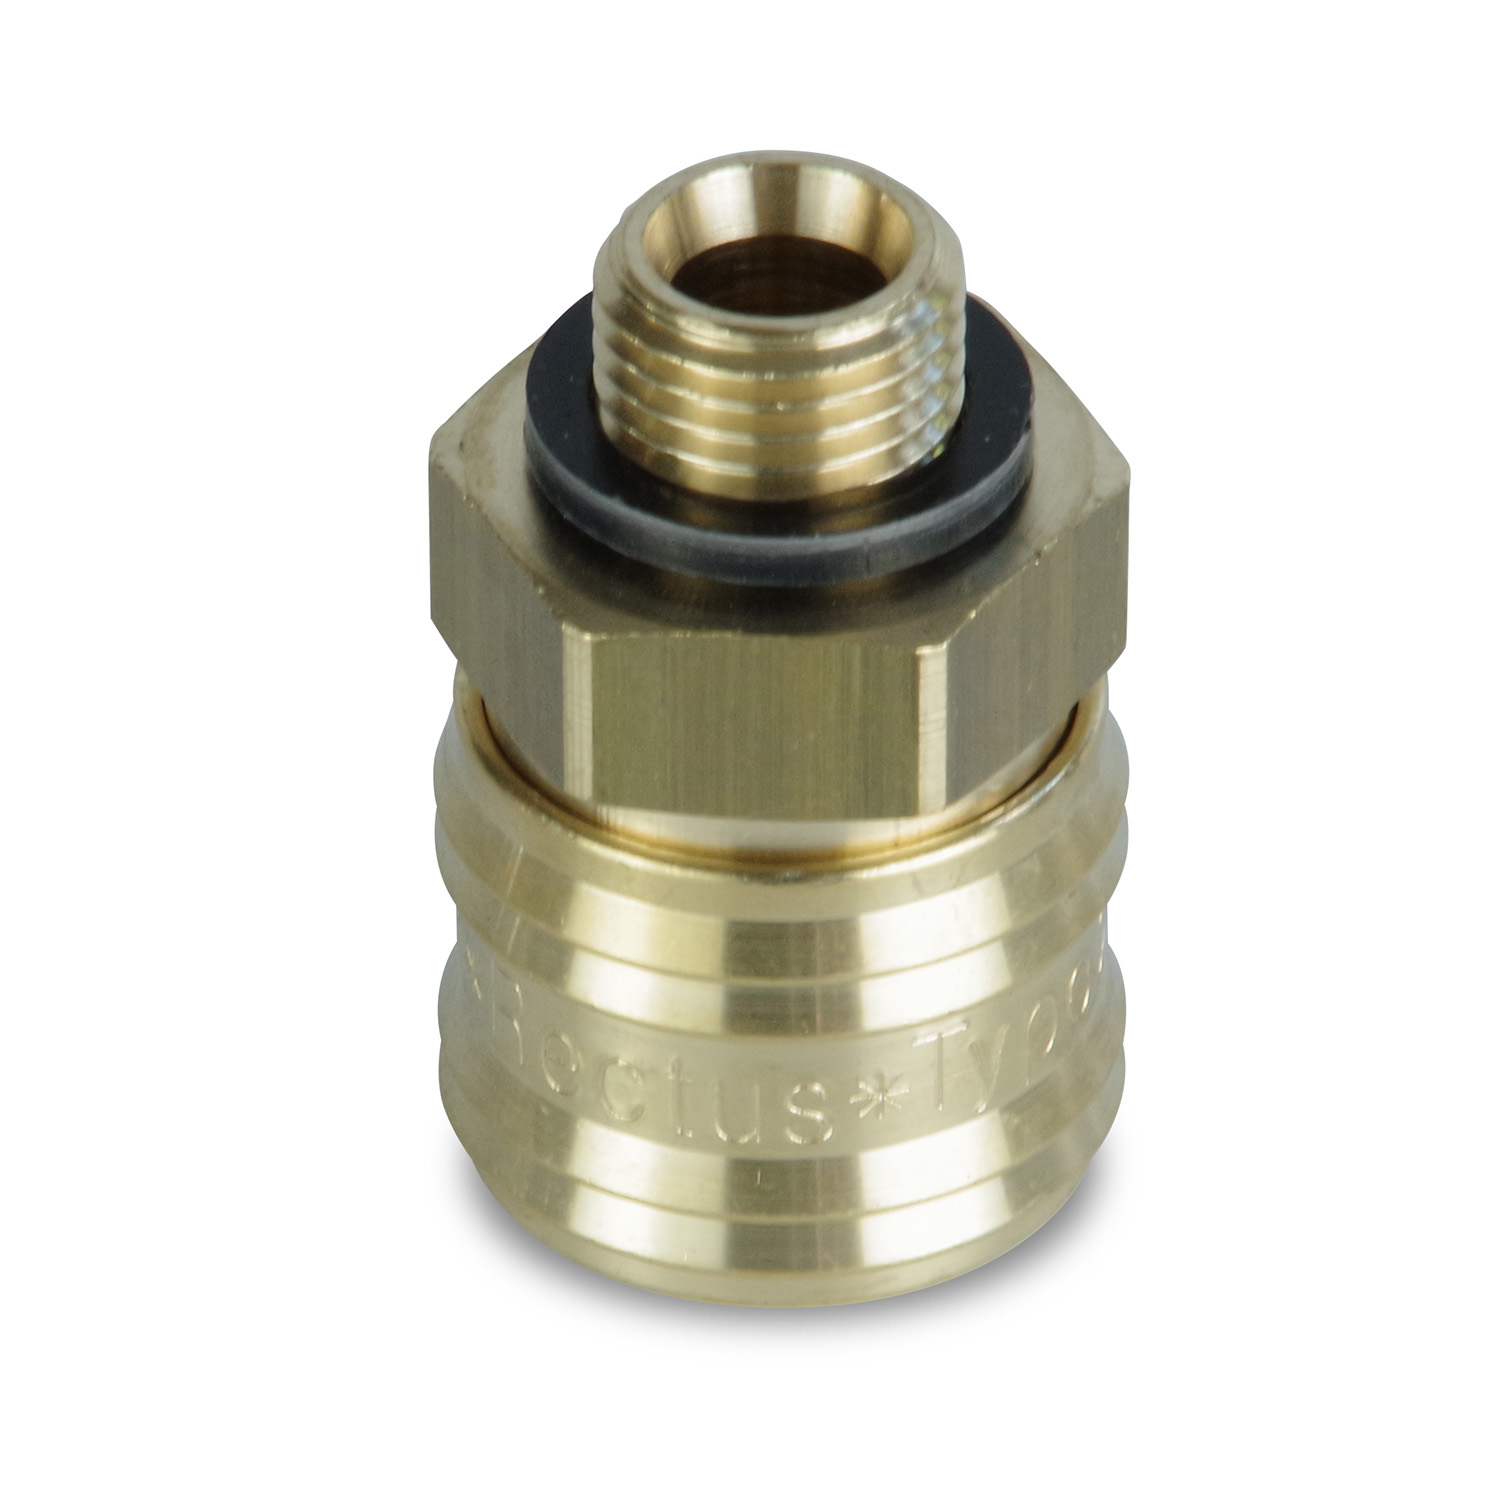 92 Quick release couplings